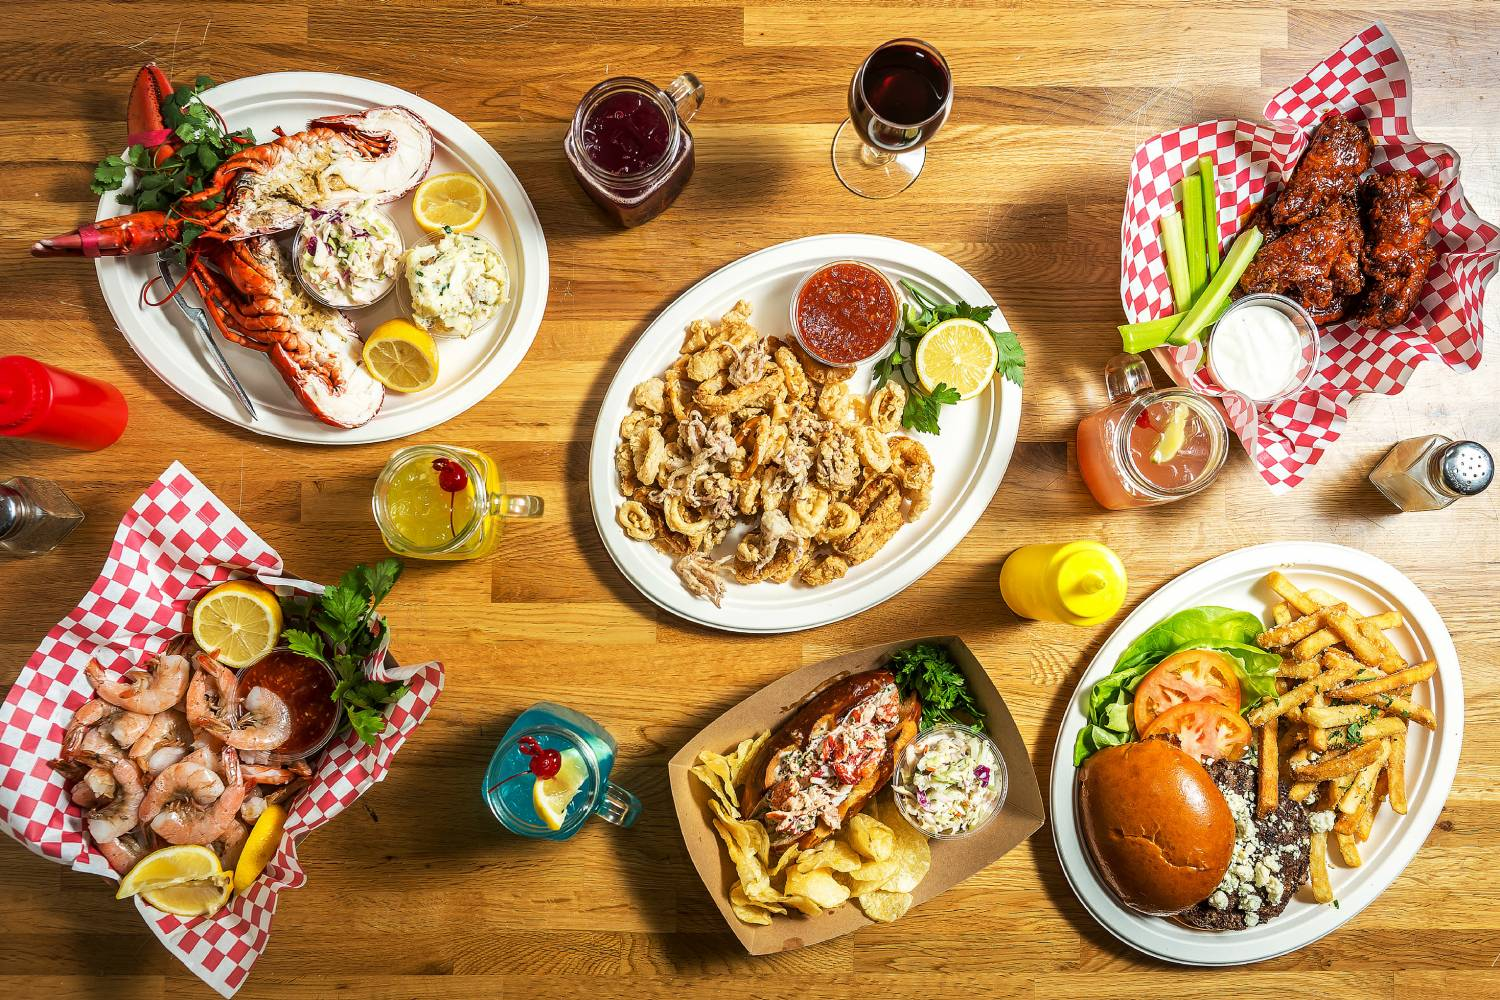 Assortment of seafood specials from North River Lobster Company